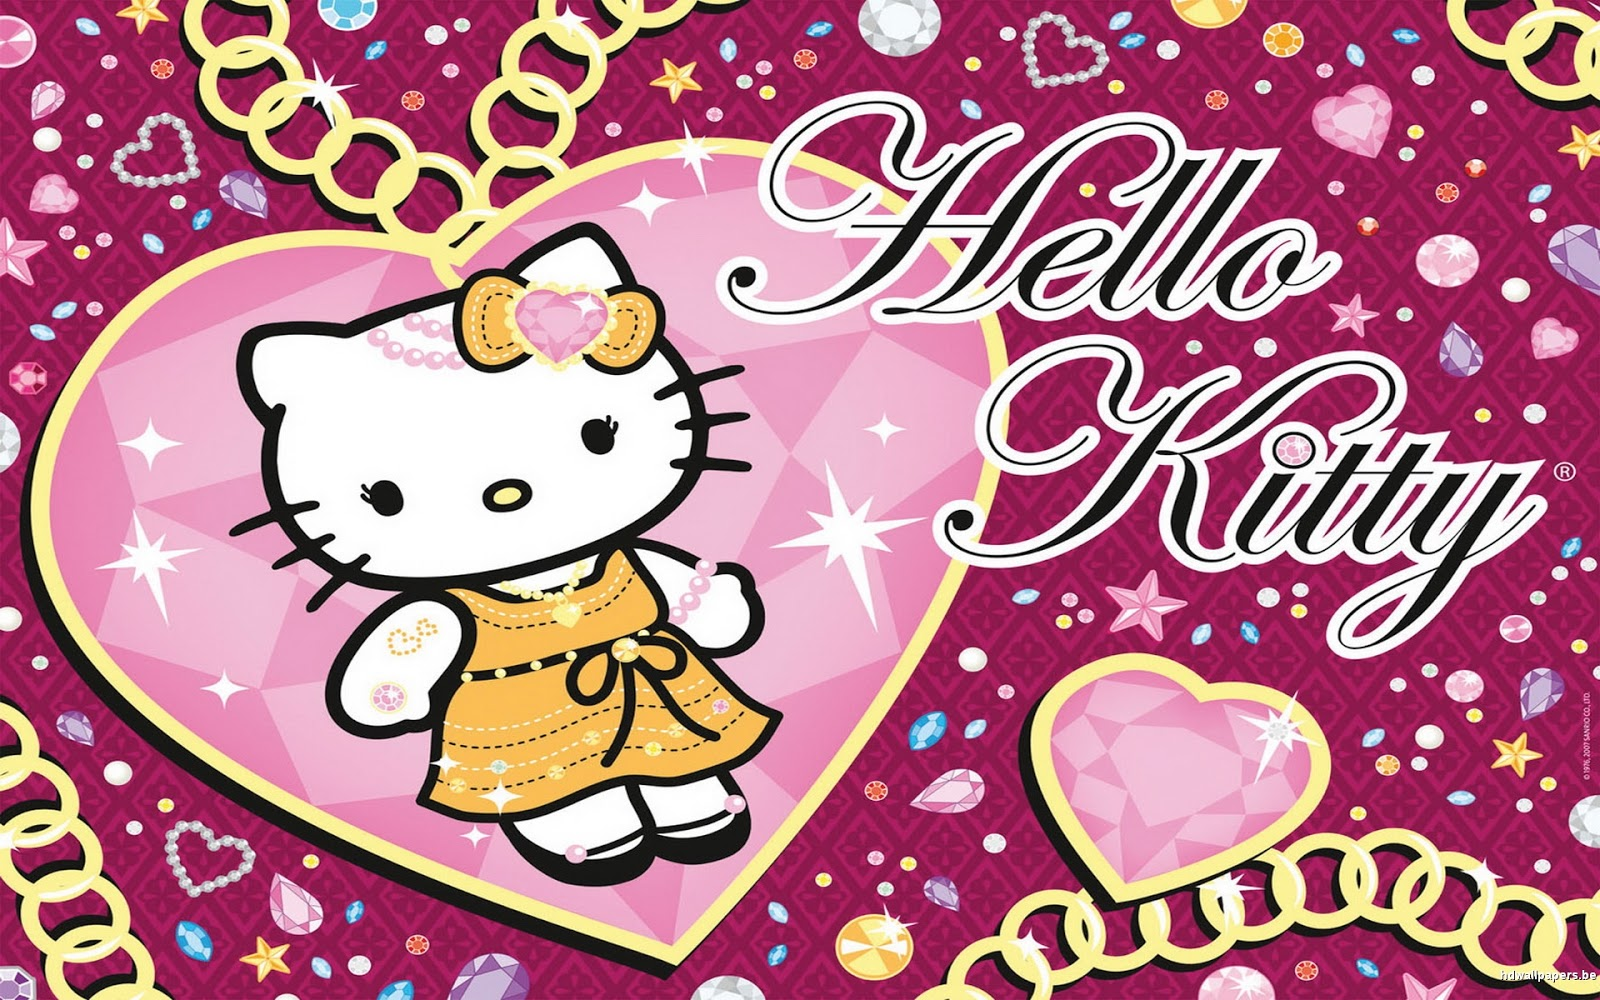 Wallpaper Atau DP BBM Hello Kitty HD Khusus Android 2015